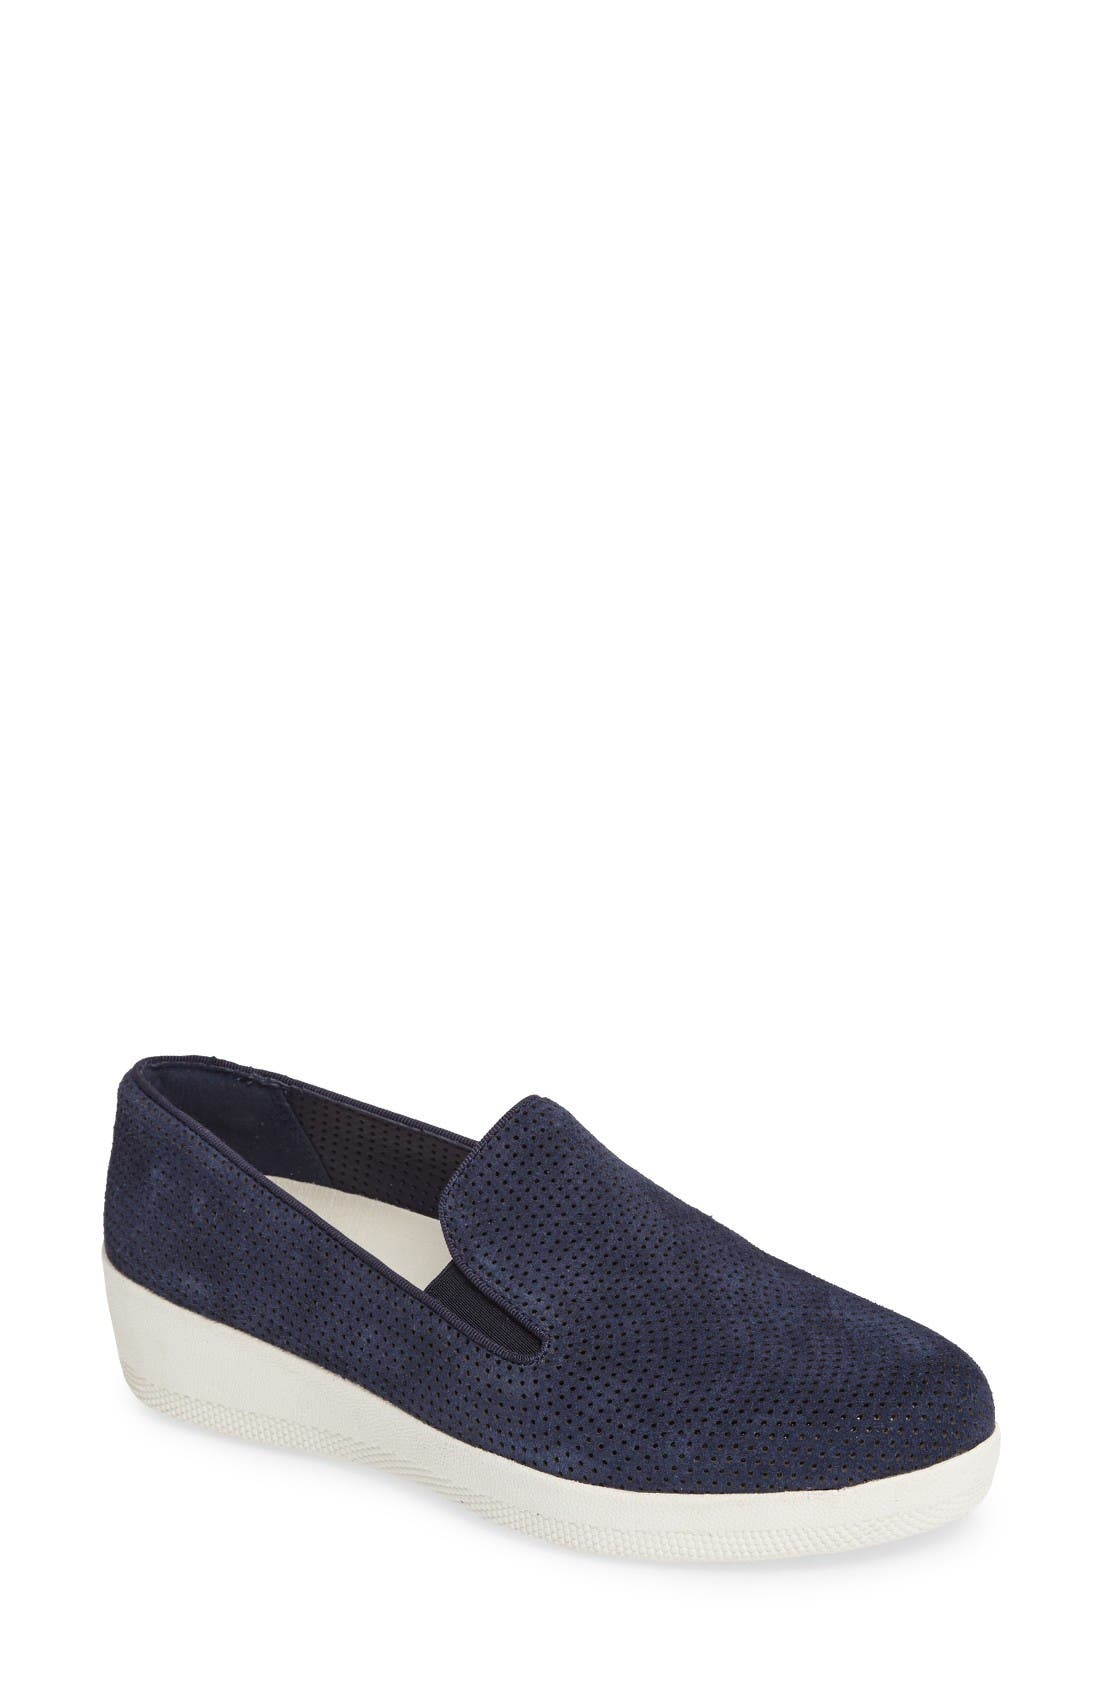 Superskate Slip-On Sneaker,                             Main thumbnail 1, color,                             Midnight Navy/ Navy Suede